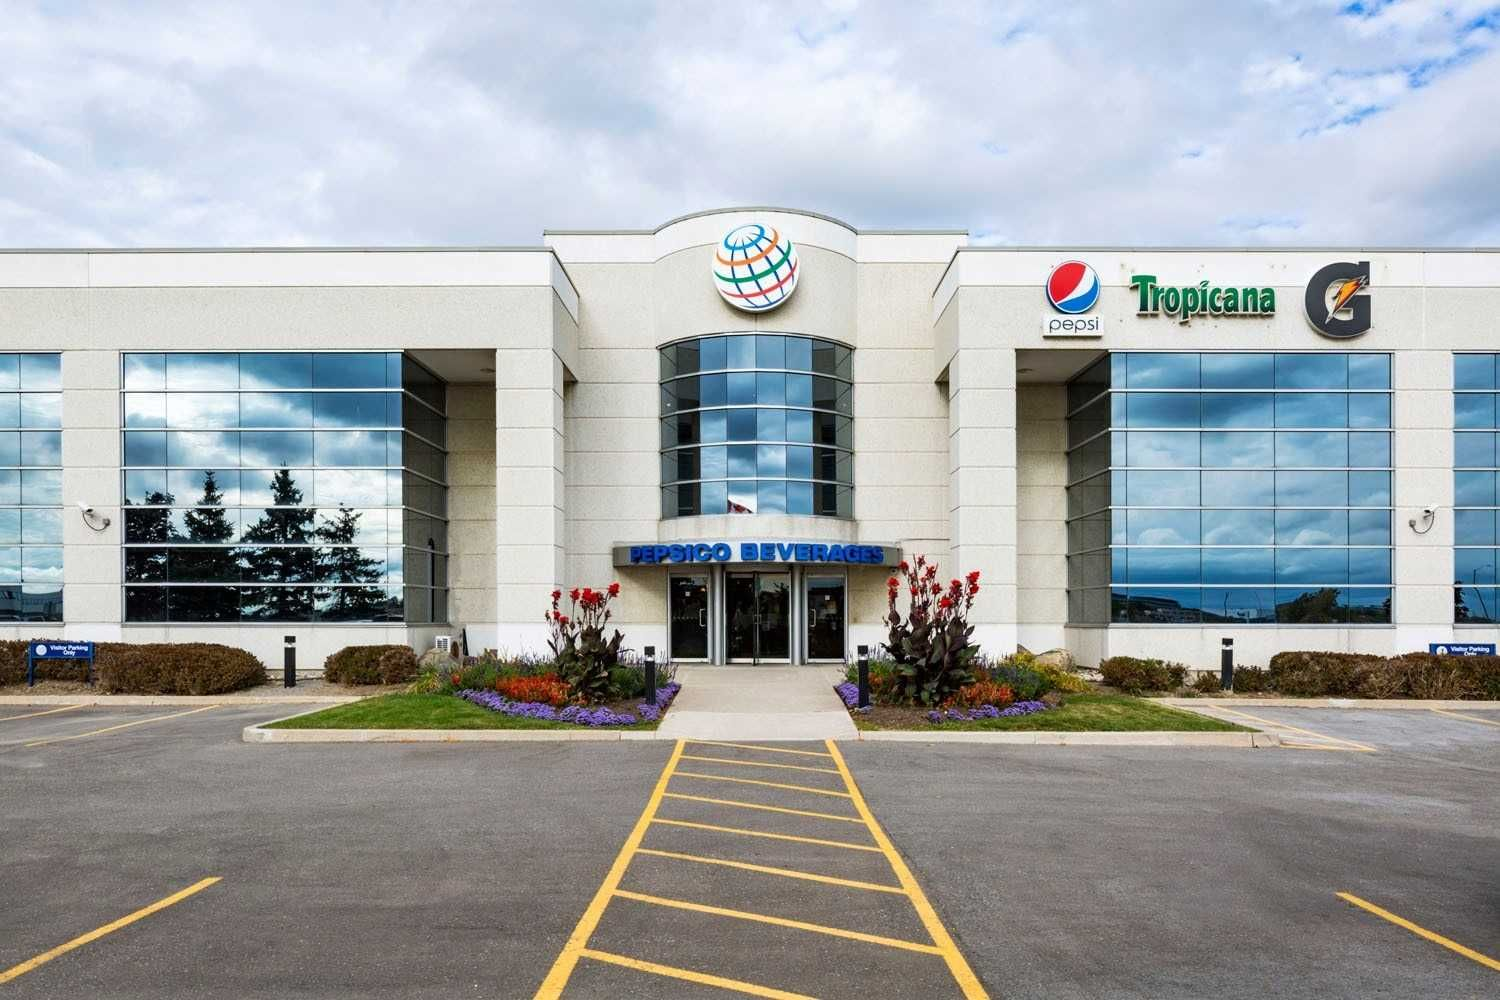 Main Photo: 5205 Satellite Drive in Mississauga: Airport Corporate Property for sale : MLS®# W4855382